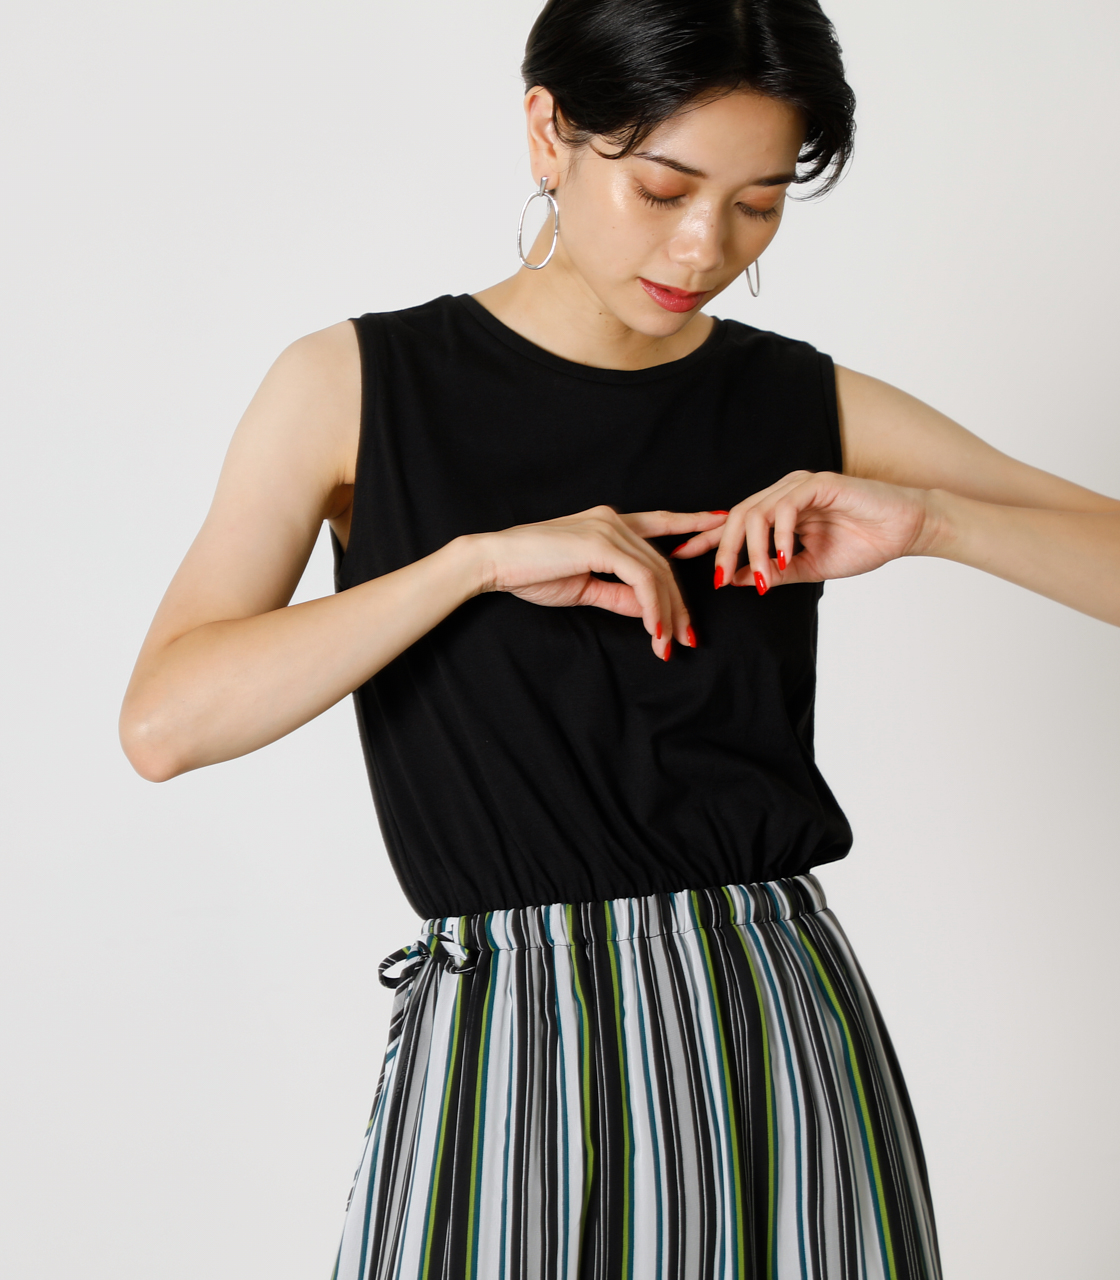 2WAY STRIPE COMBI ONEPIECE/2WAYストライプコンビワンピース 詳細画像 柄BLK 2